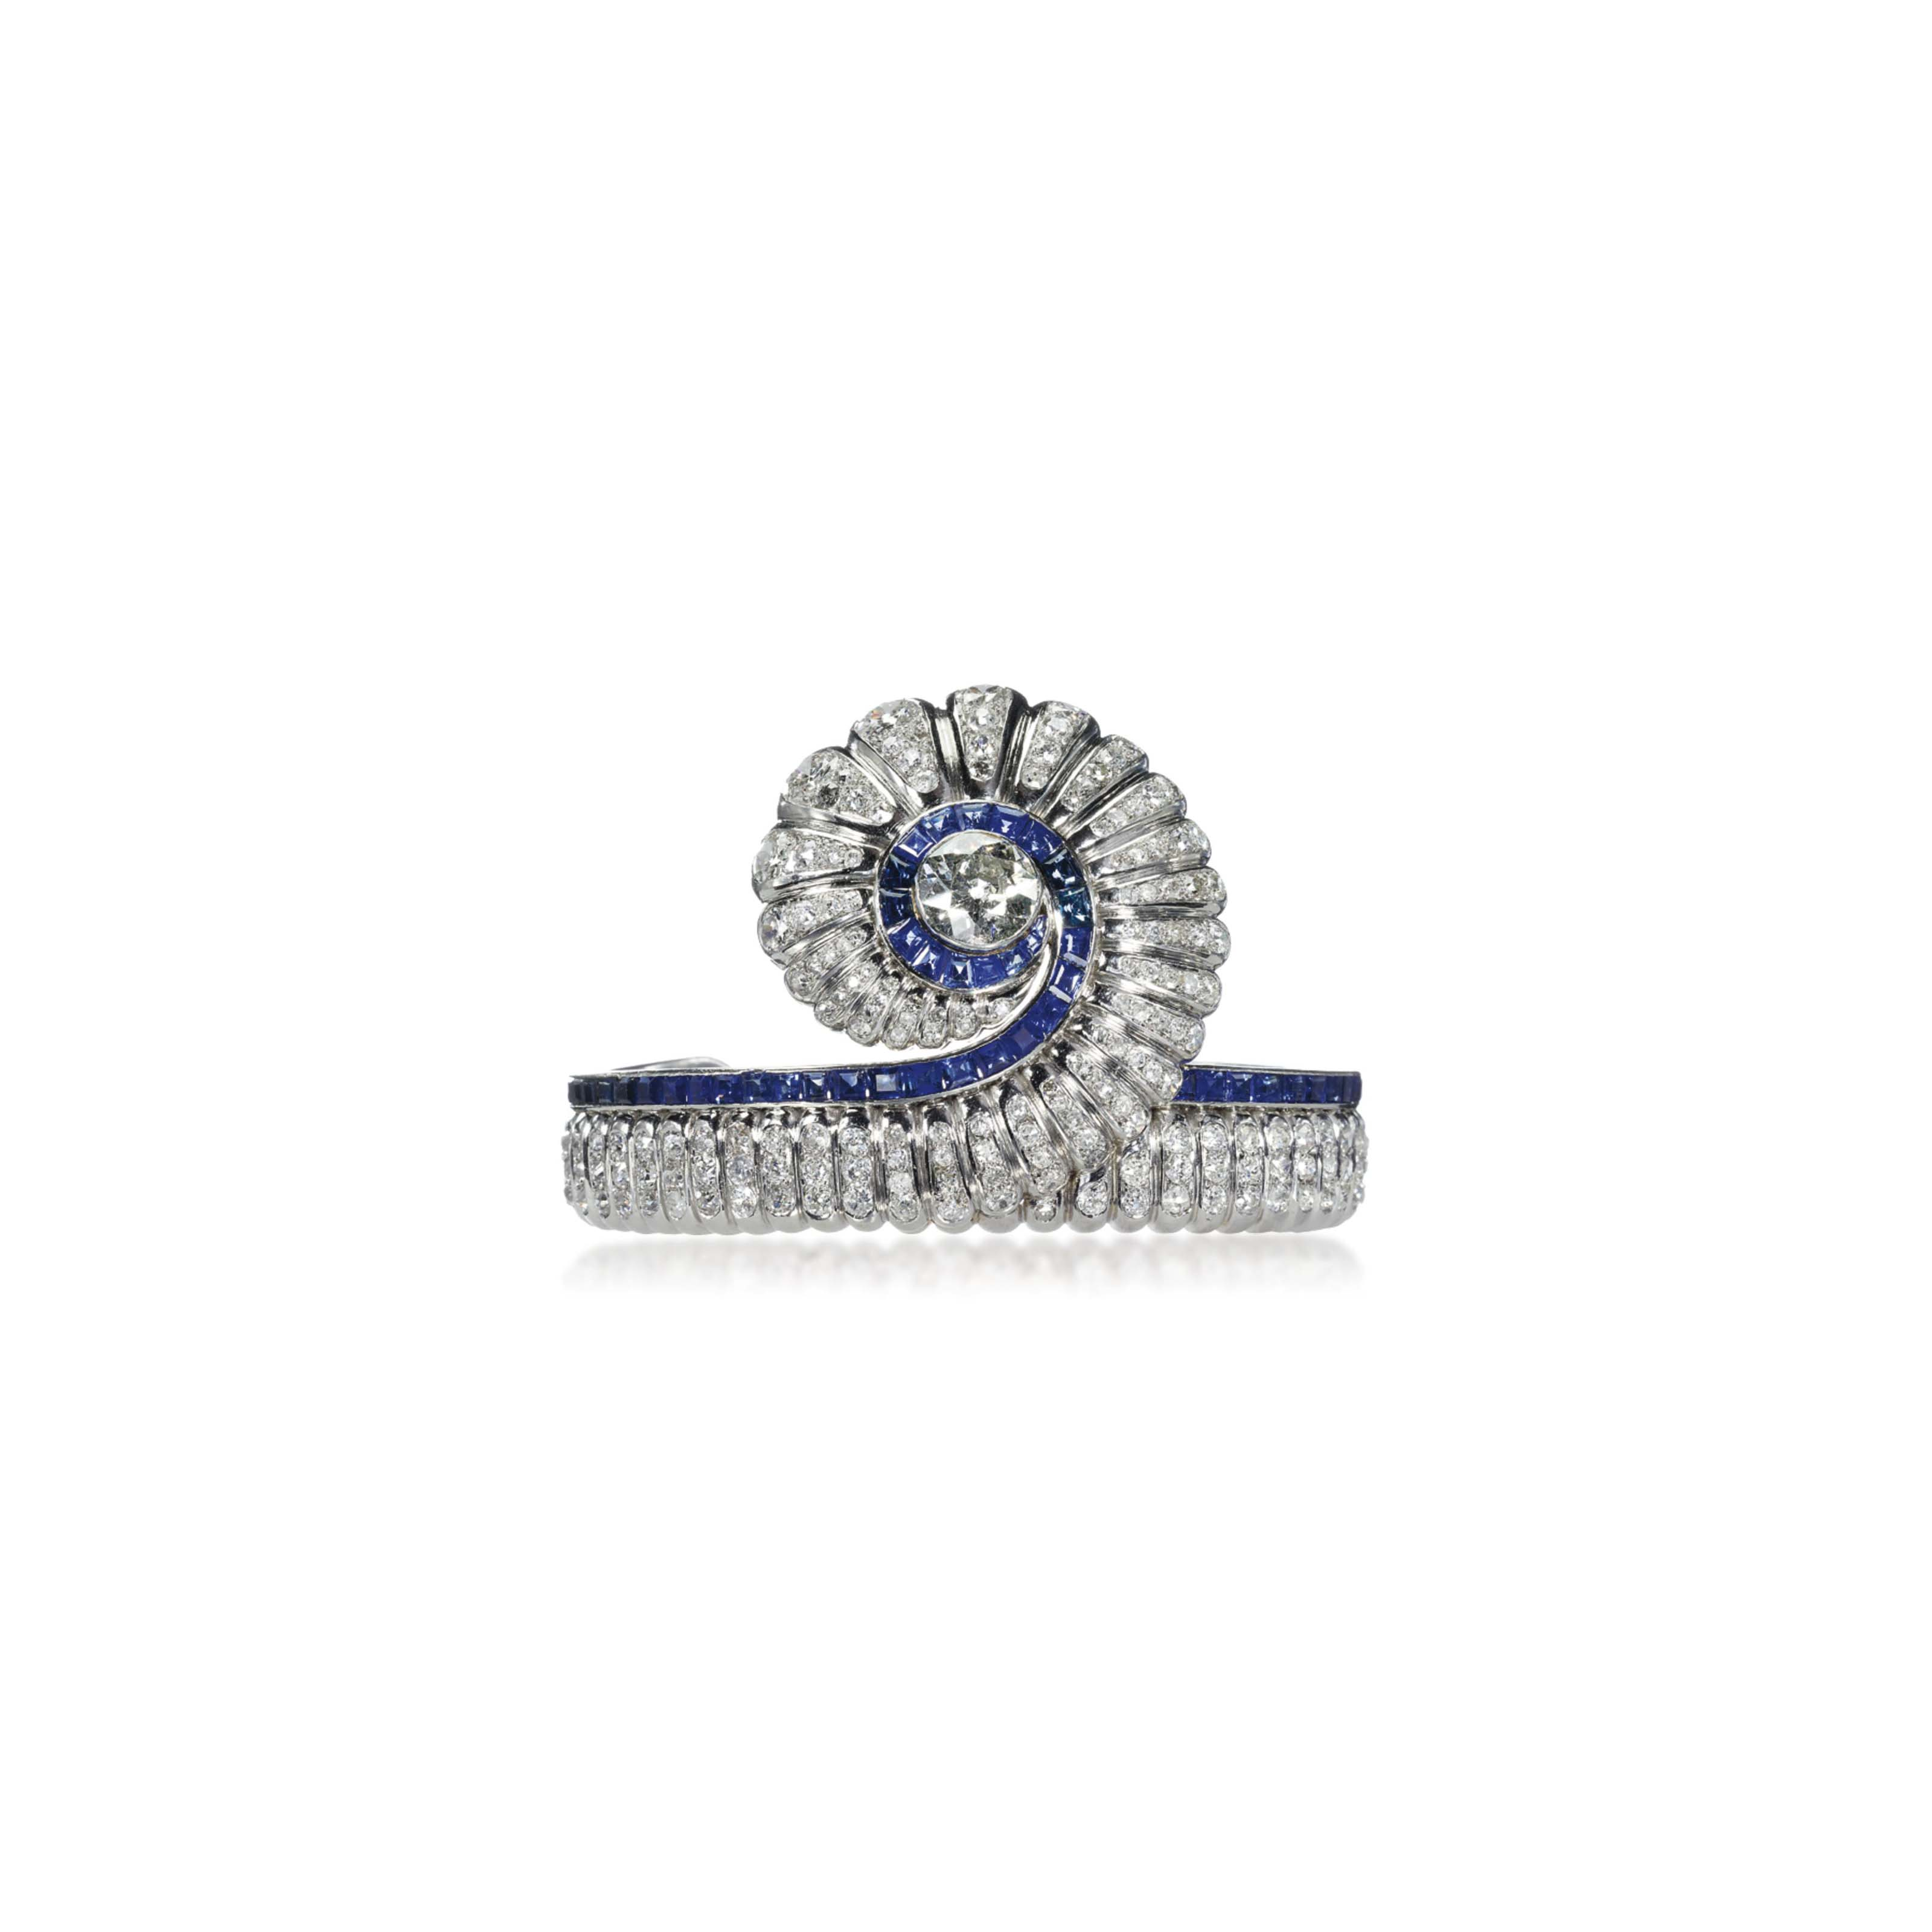 A SAPPHIRE AND DIAMOND BANGLE, BY SUZANNE BELPERRON